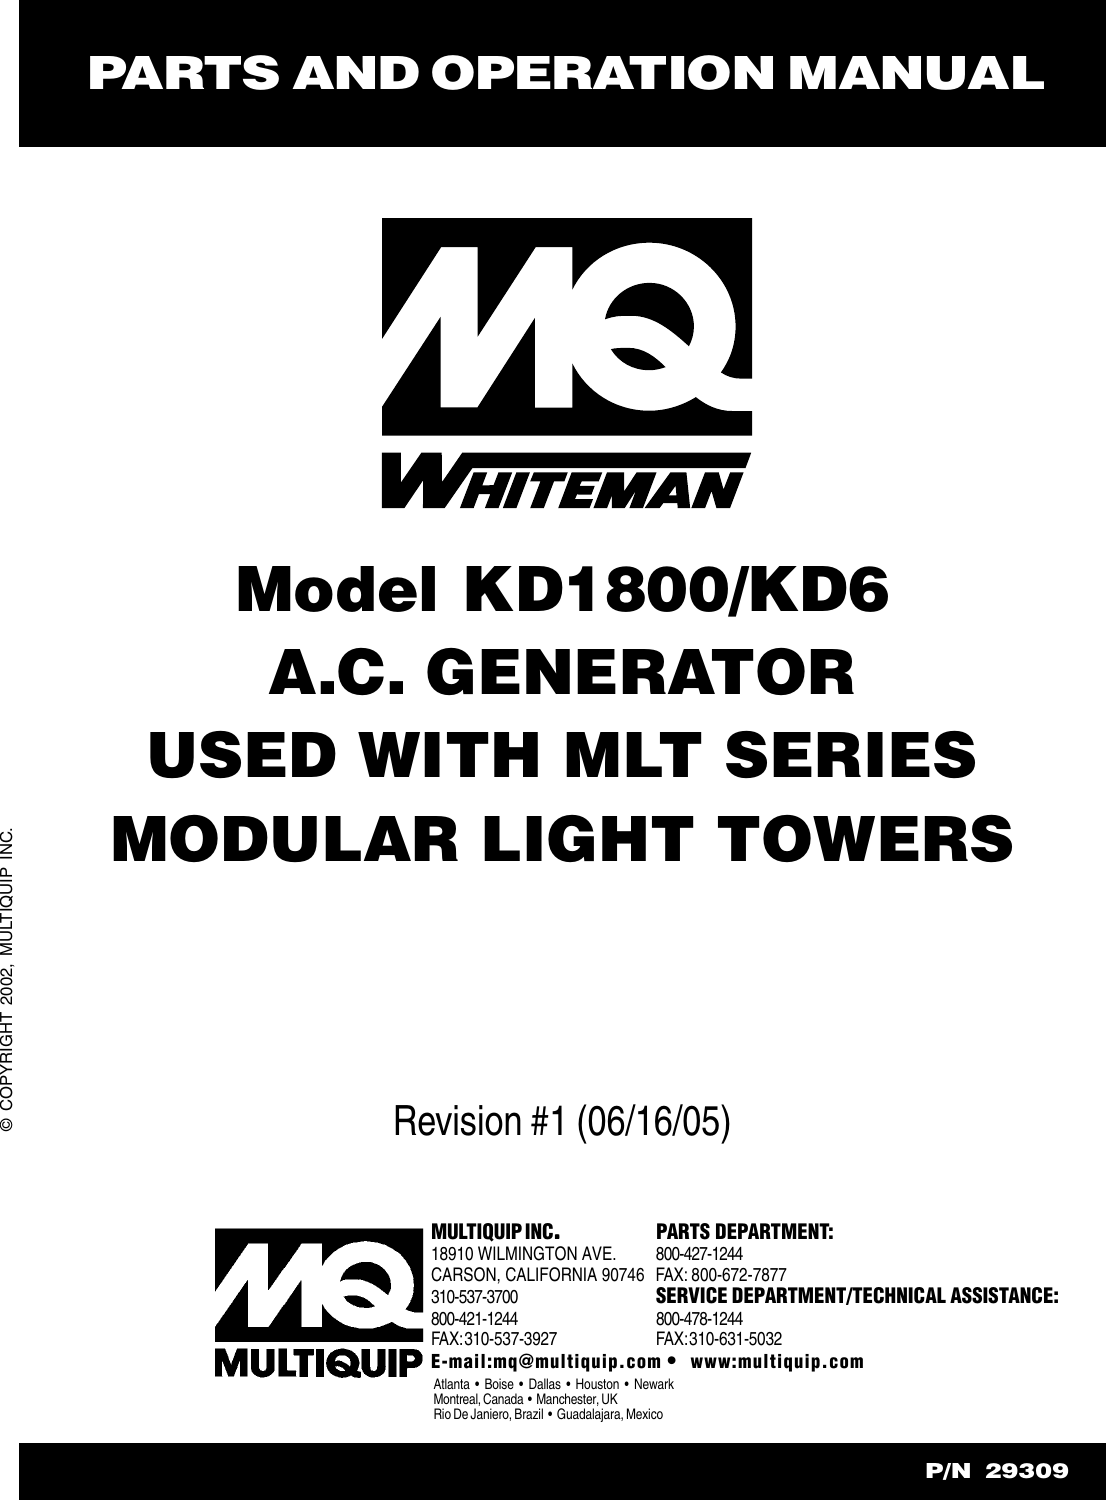 Generator Wire Kubota D905ebg Real Wiring Diagram Breeze Fan Harbor Switch 00033906 Multiquip A C Used With Mlt Series Modular Light Towers Rh Usermanual Wiki